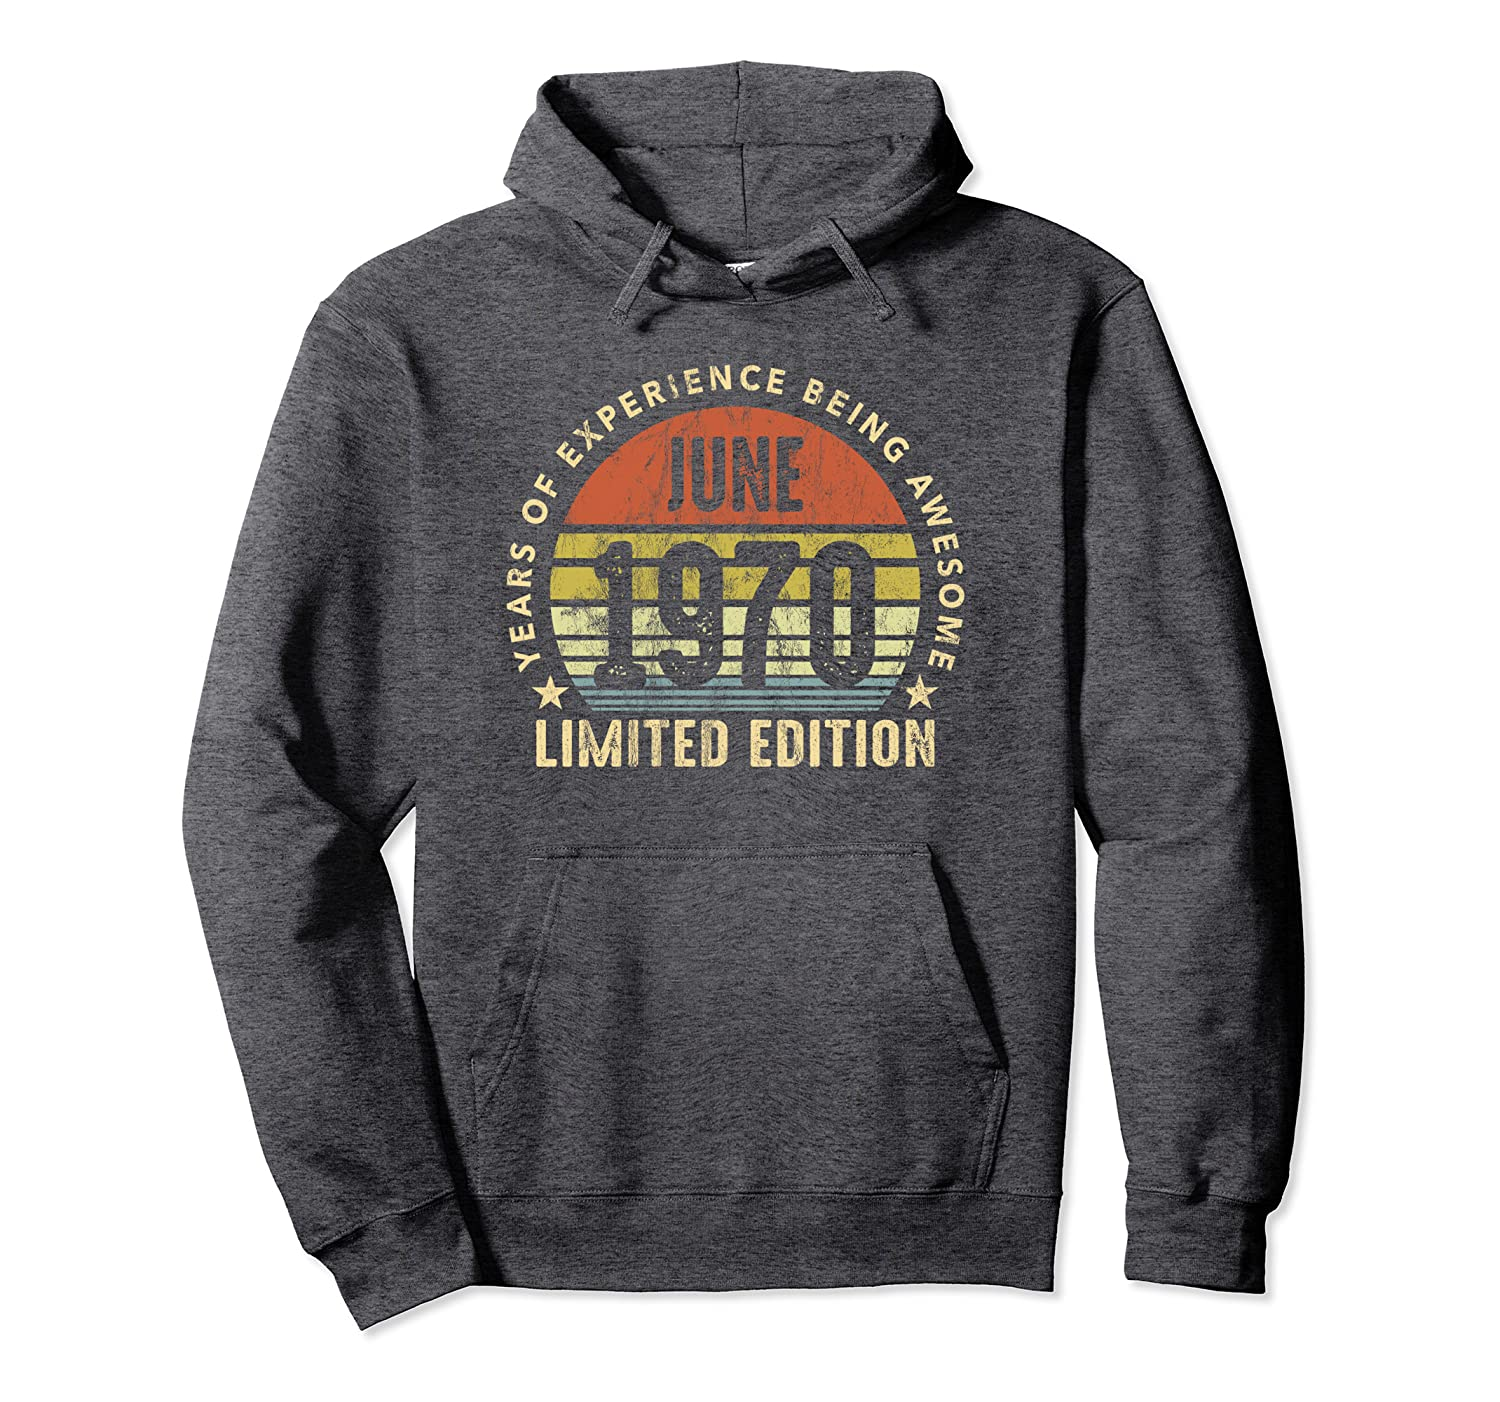 Born In June 1970 Vintage Sunset 50th Birthday All Original Pullover Hoodie